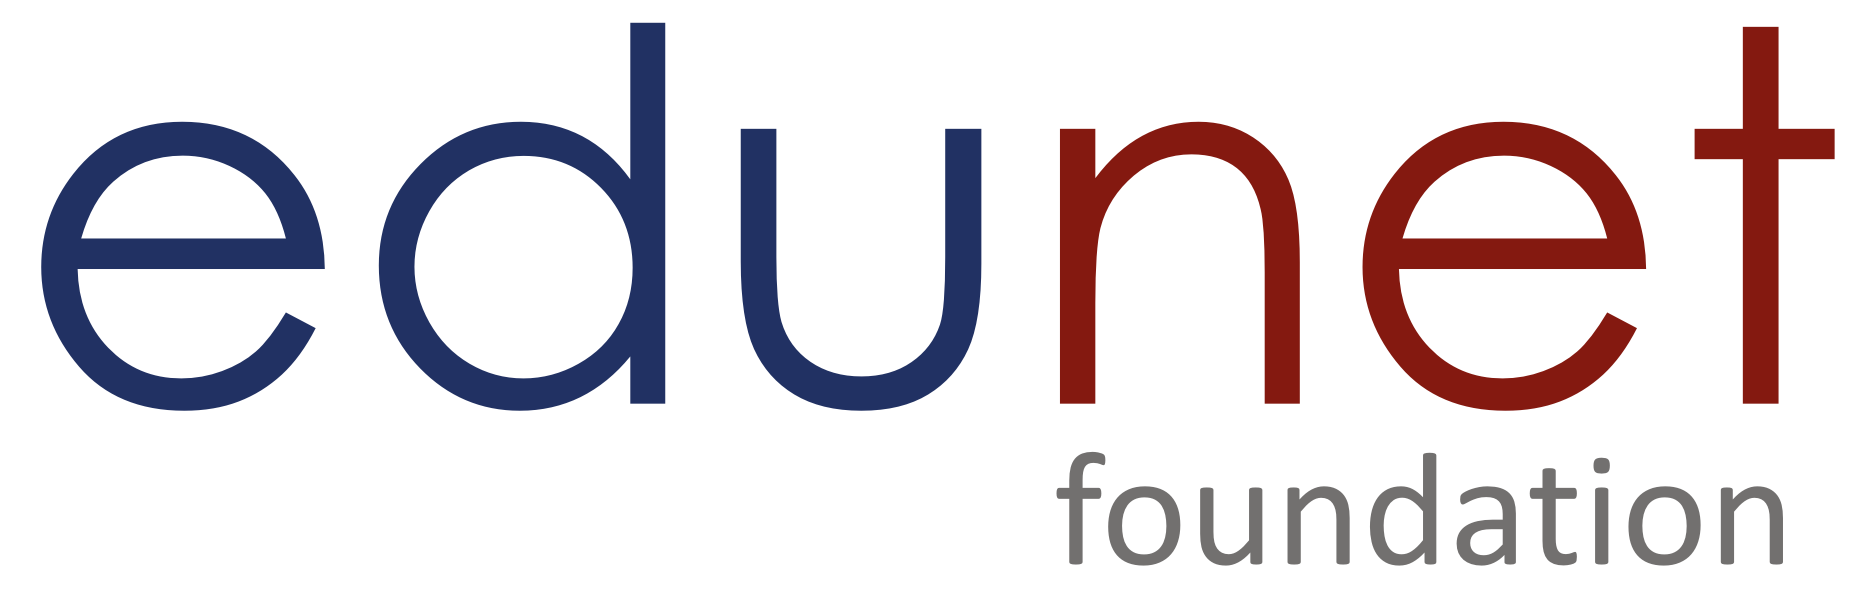 Edunet Foundation